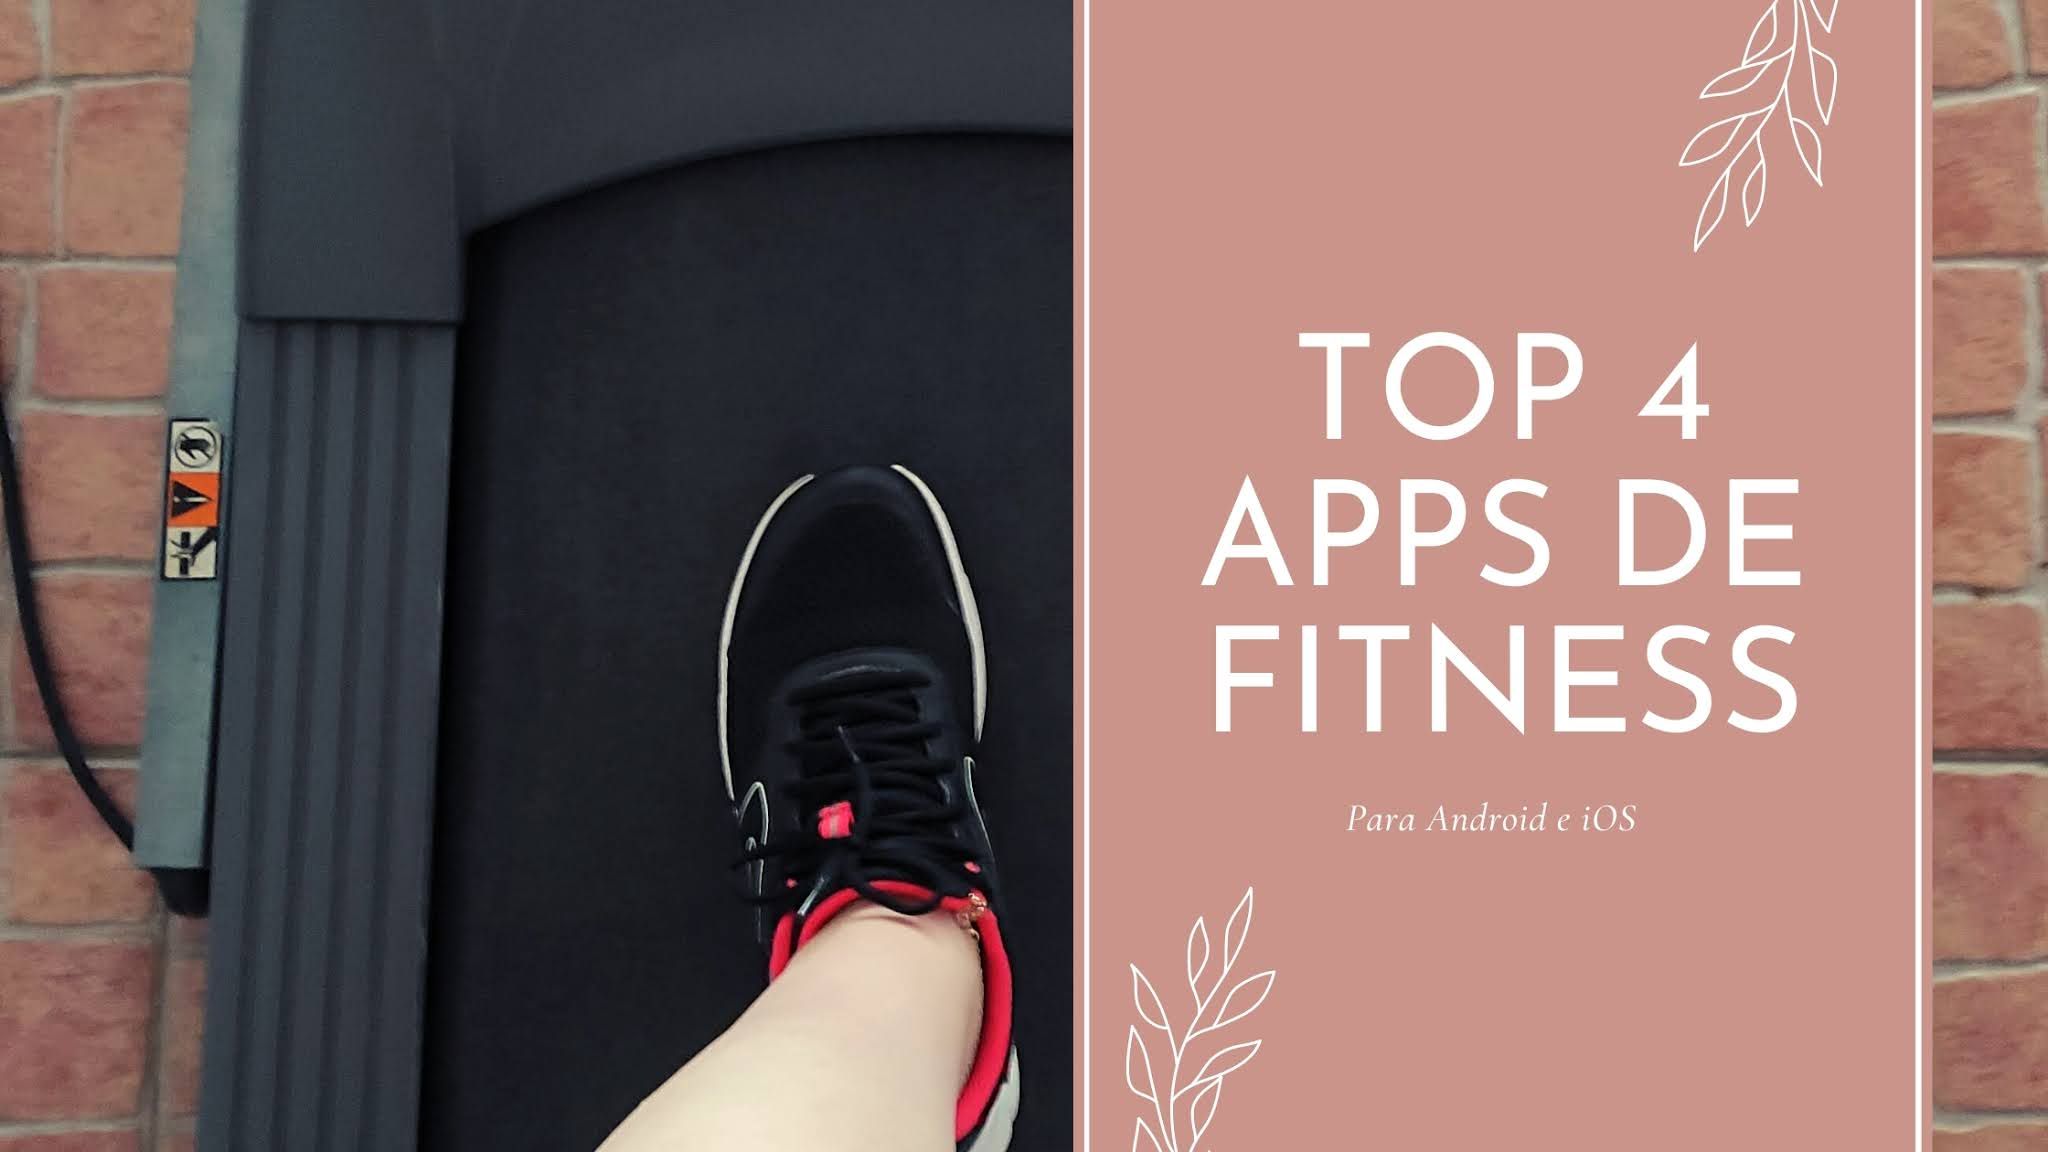 Top 4 Apps de Fitness